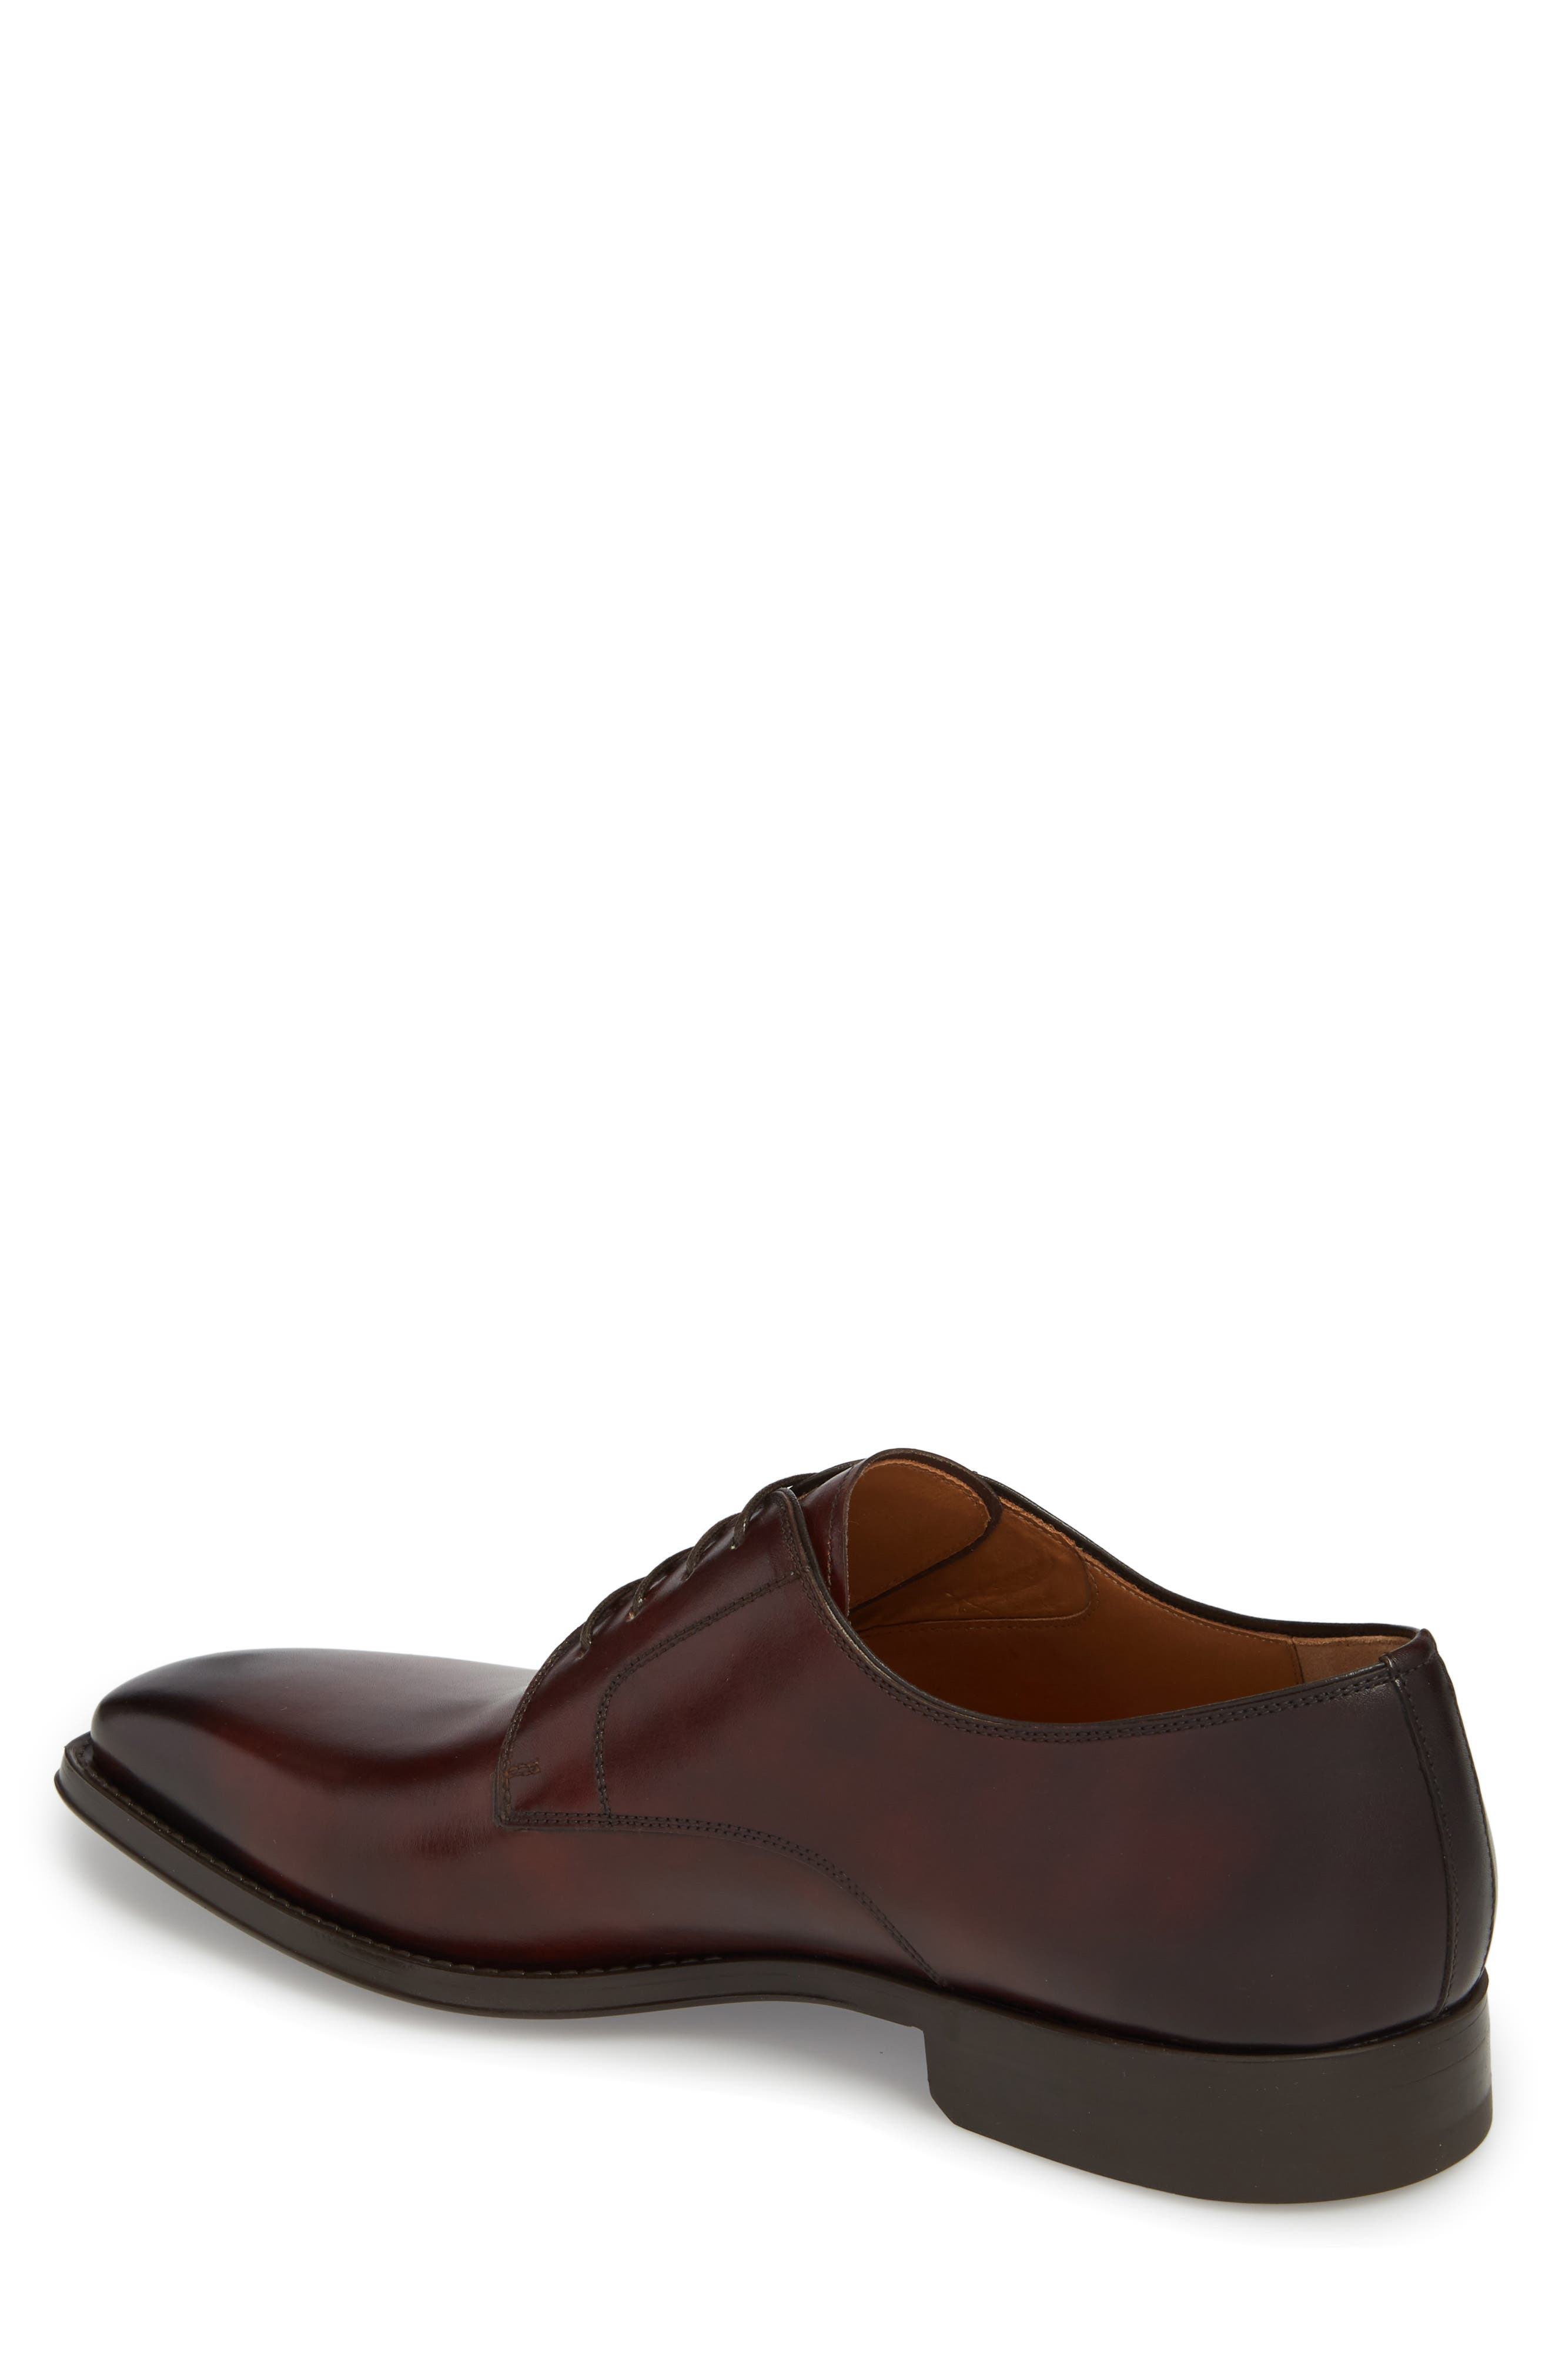 Colo II Plain Toe Derby,                             Alternate thumbnail 2, color,                             Mid Brown Leather